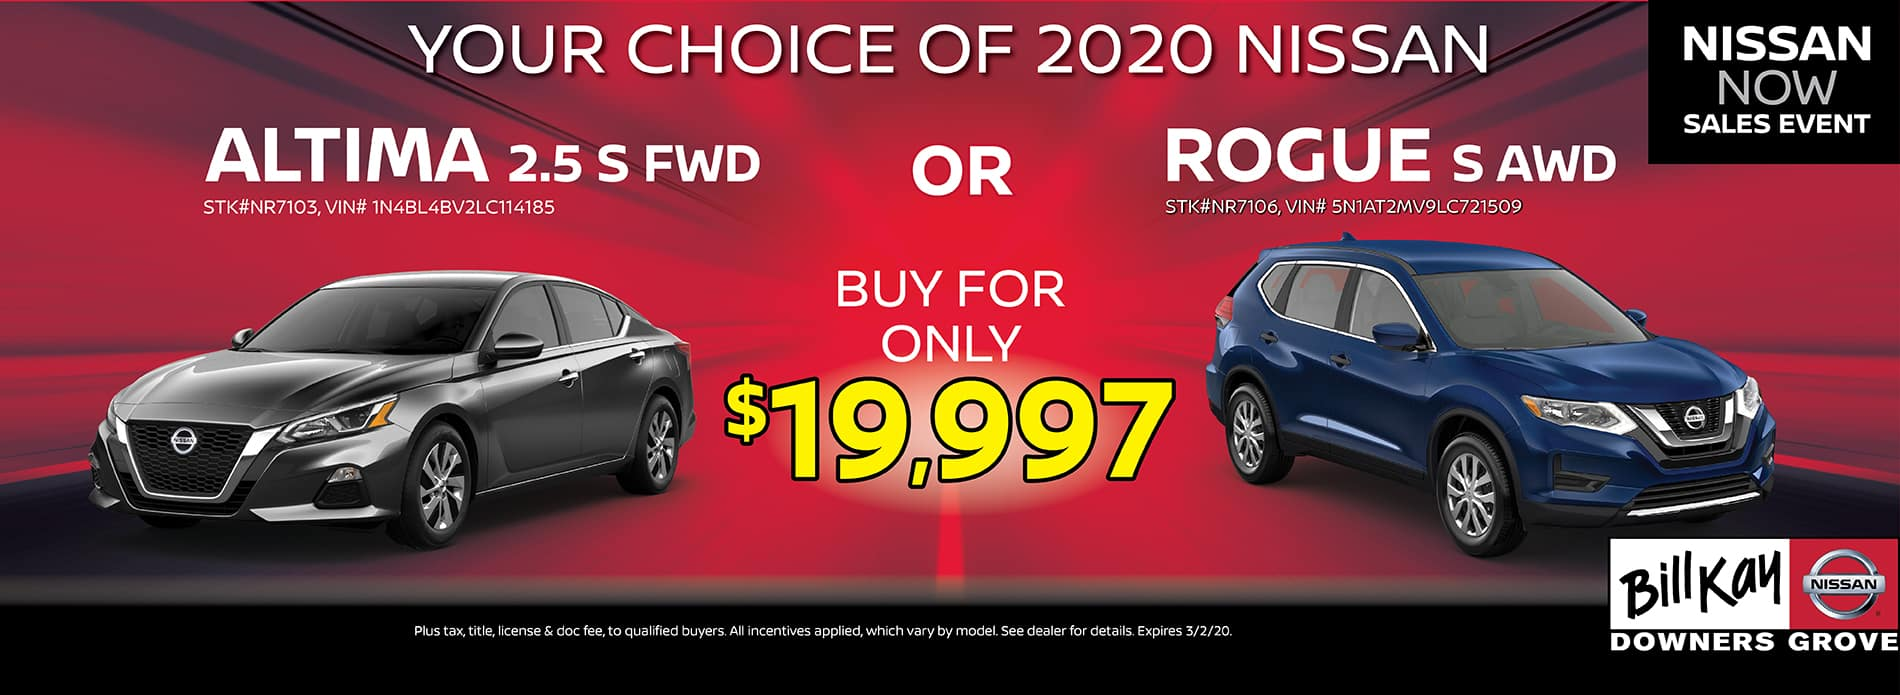 Buy an Altima or Rogue